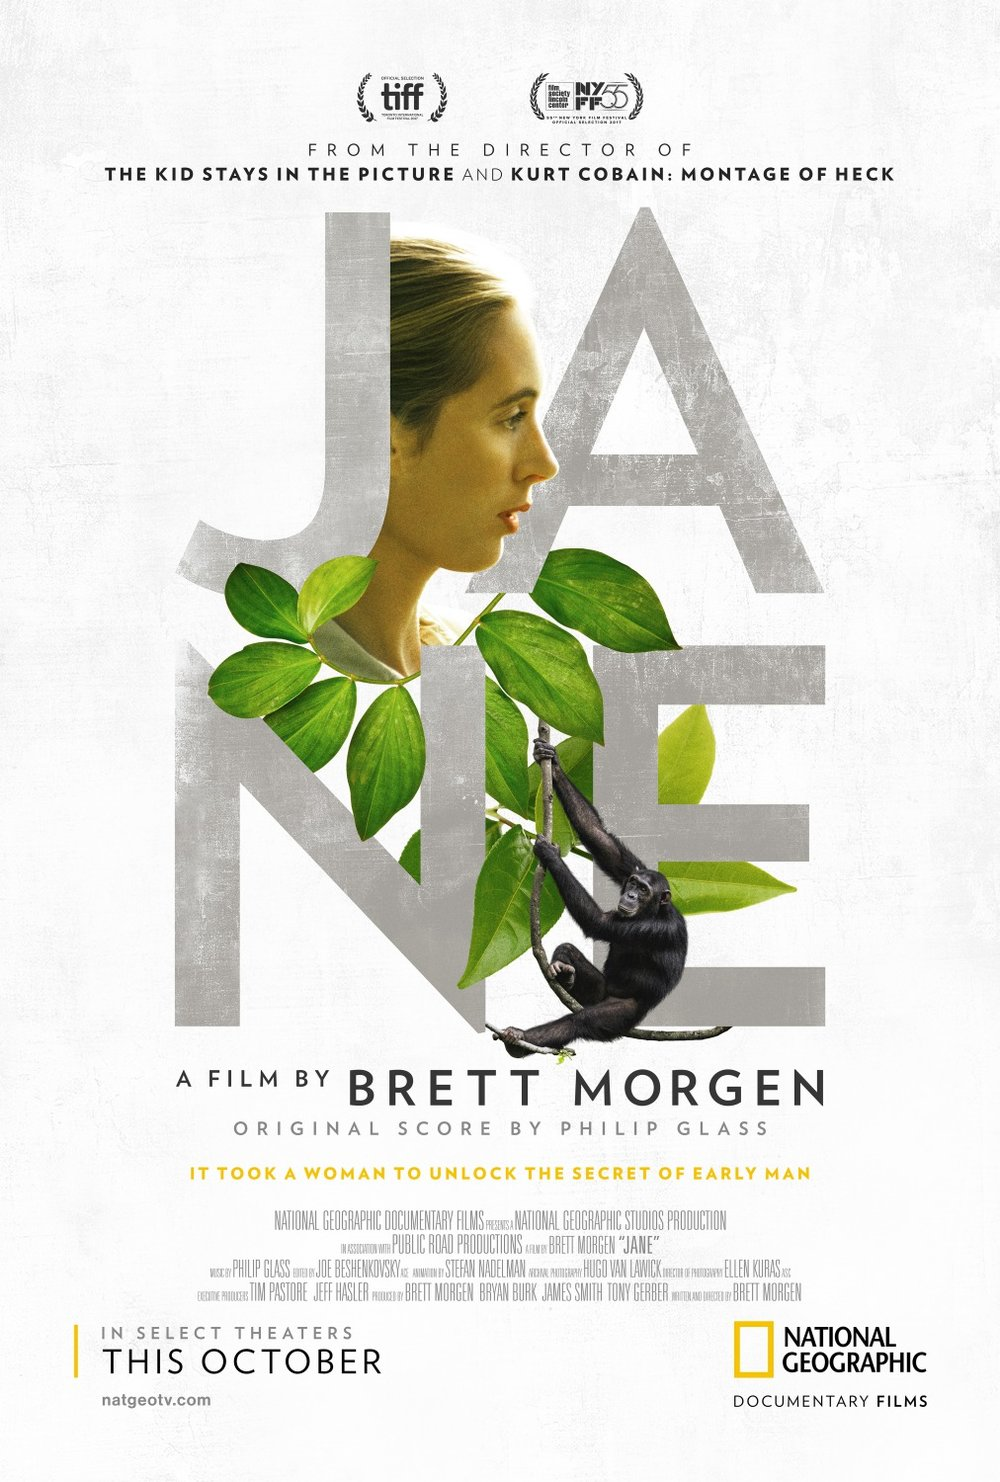 director:  Brett Morgen  writer:  Brett Morgen  cinematographer:  Hugo van Lawick, Ellen Kuras  editor:  Joe Beshenkovsky  composer:  Philip Glass  cast:  Jane Goodall, Hugo van Lawick  country:  USA  year:  2017